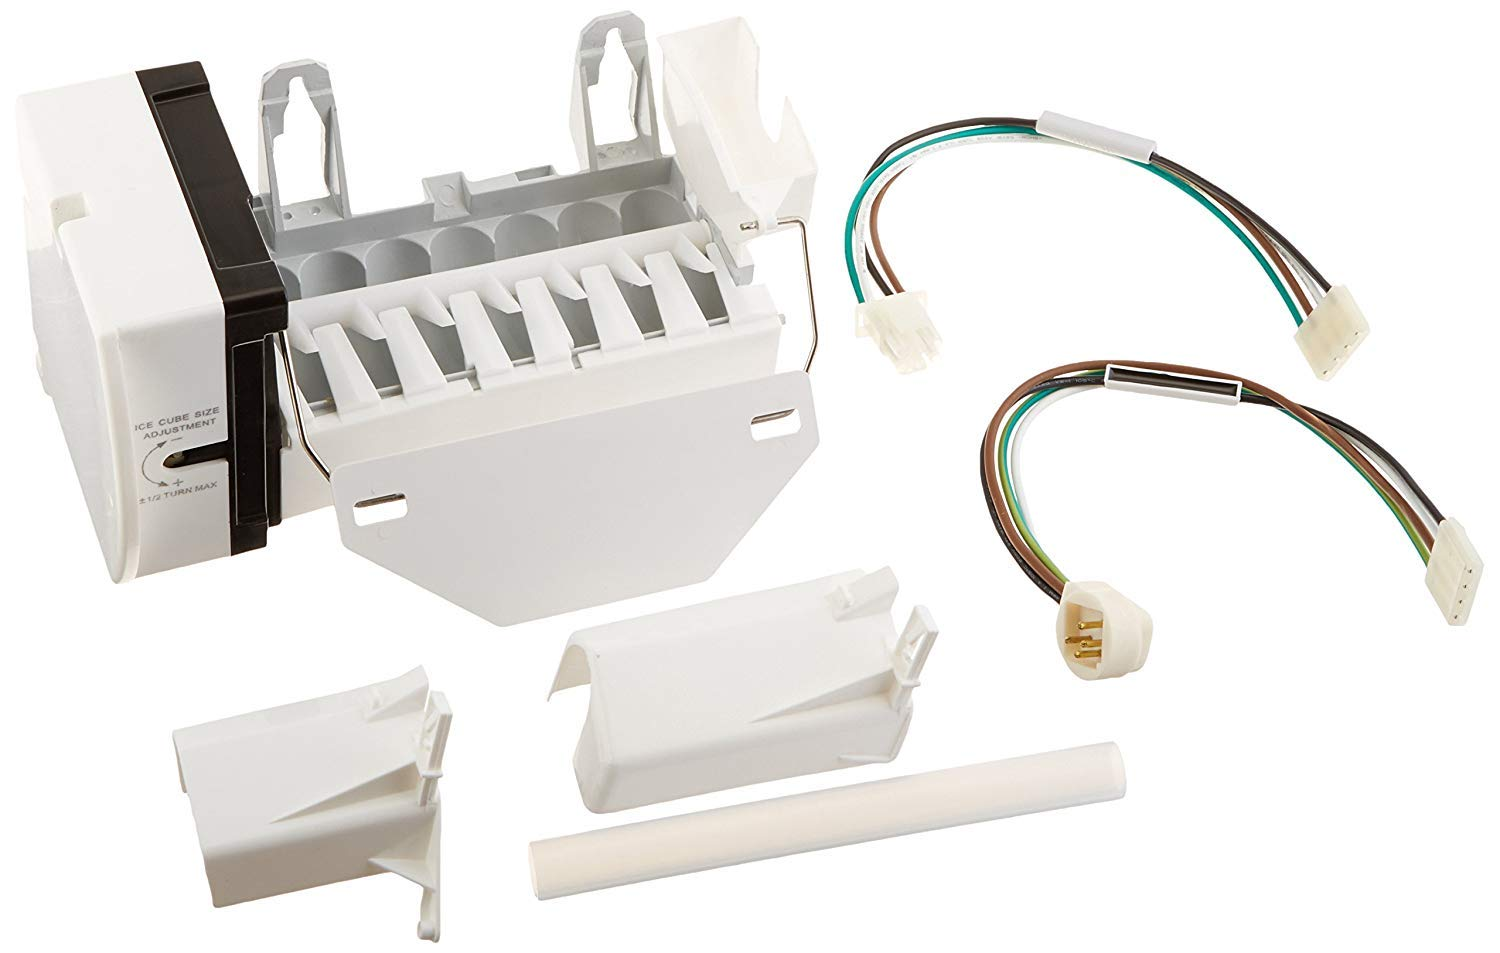 Bombing free shipping Ranking integrated 1st place Kenmore Replacement Refrigerator Freezer Maker WR30X0318 Ice